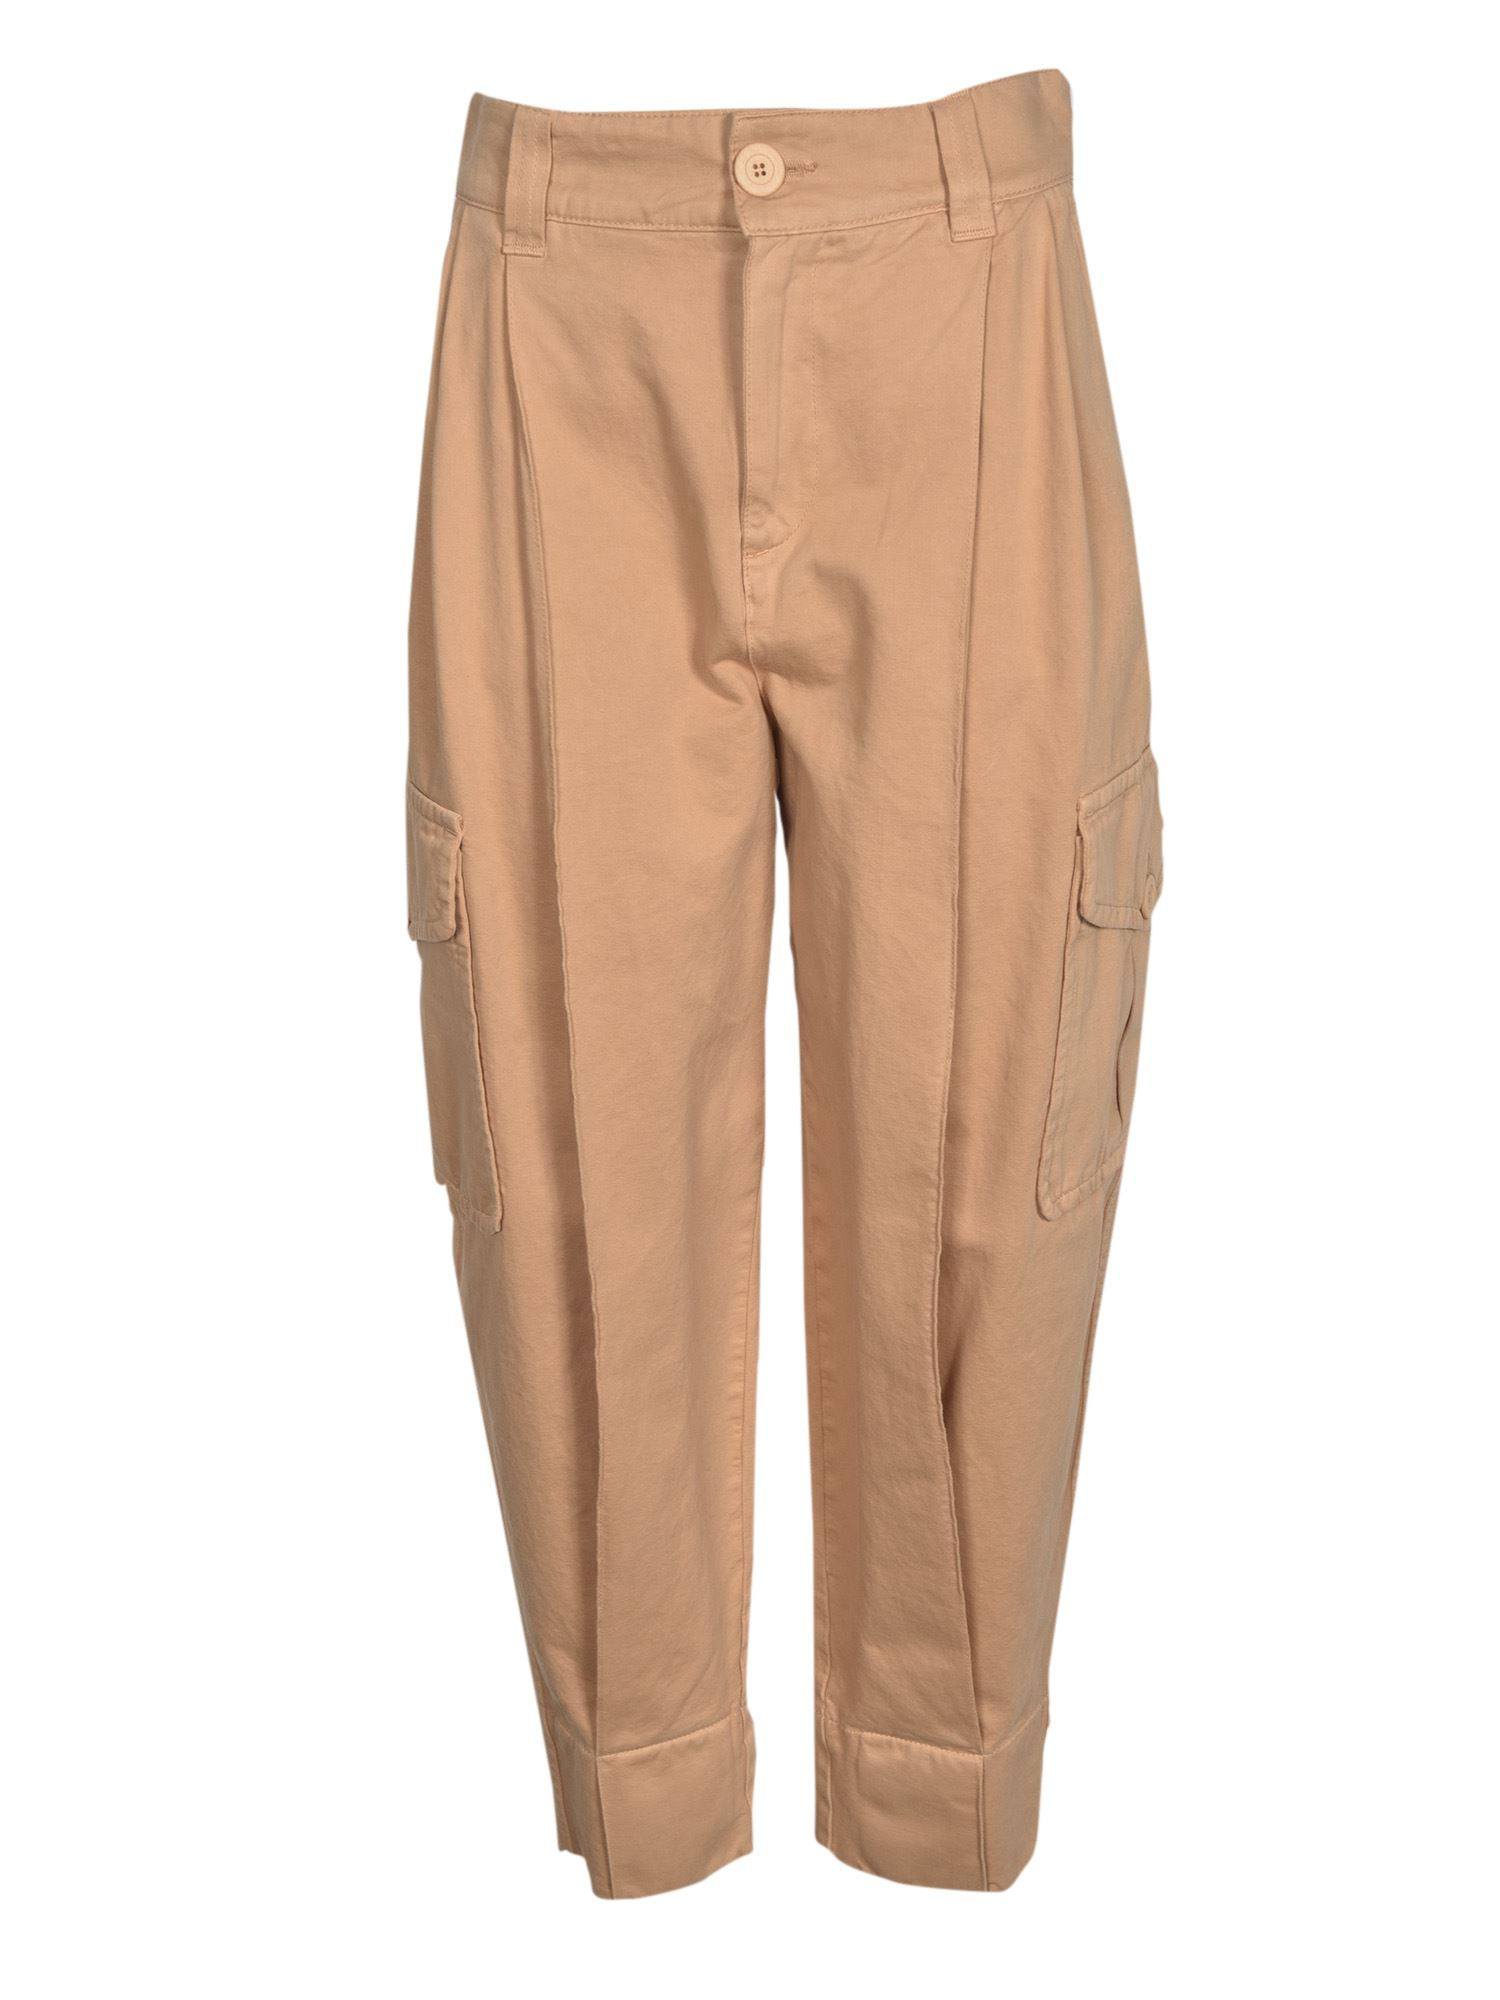 See By Chloé Cottons CARGO PANTS IN DELICATE PINK